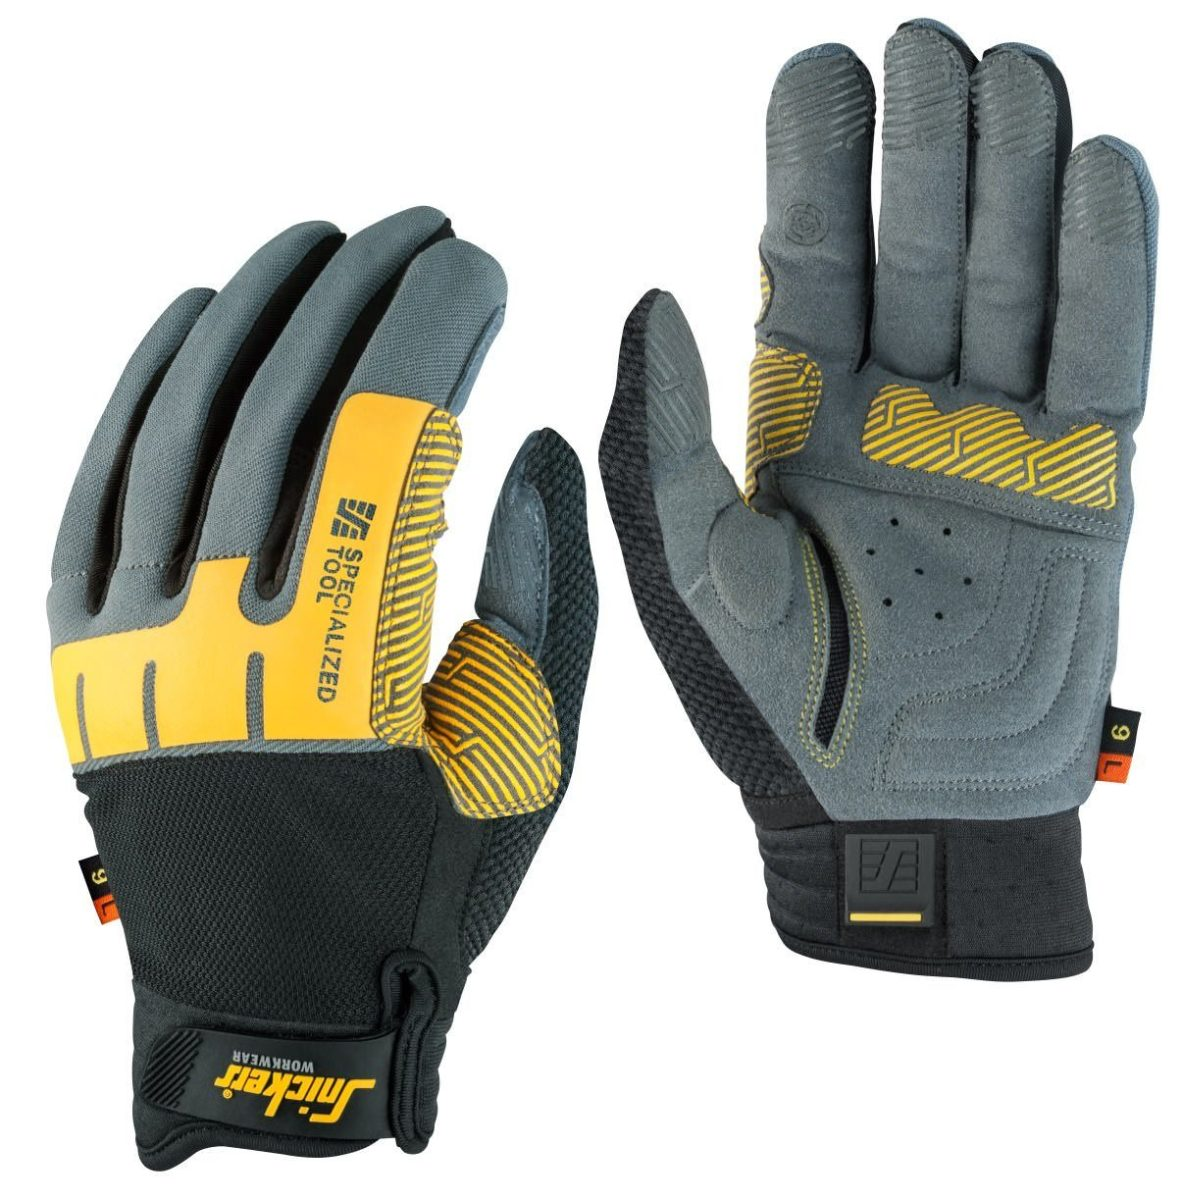 Snickers Specialised Tool Gloves (Pair)